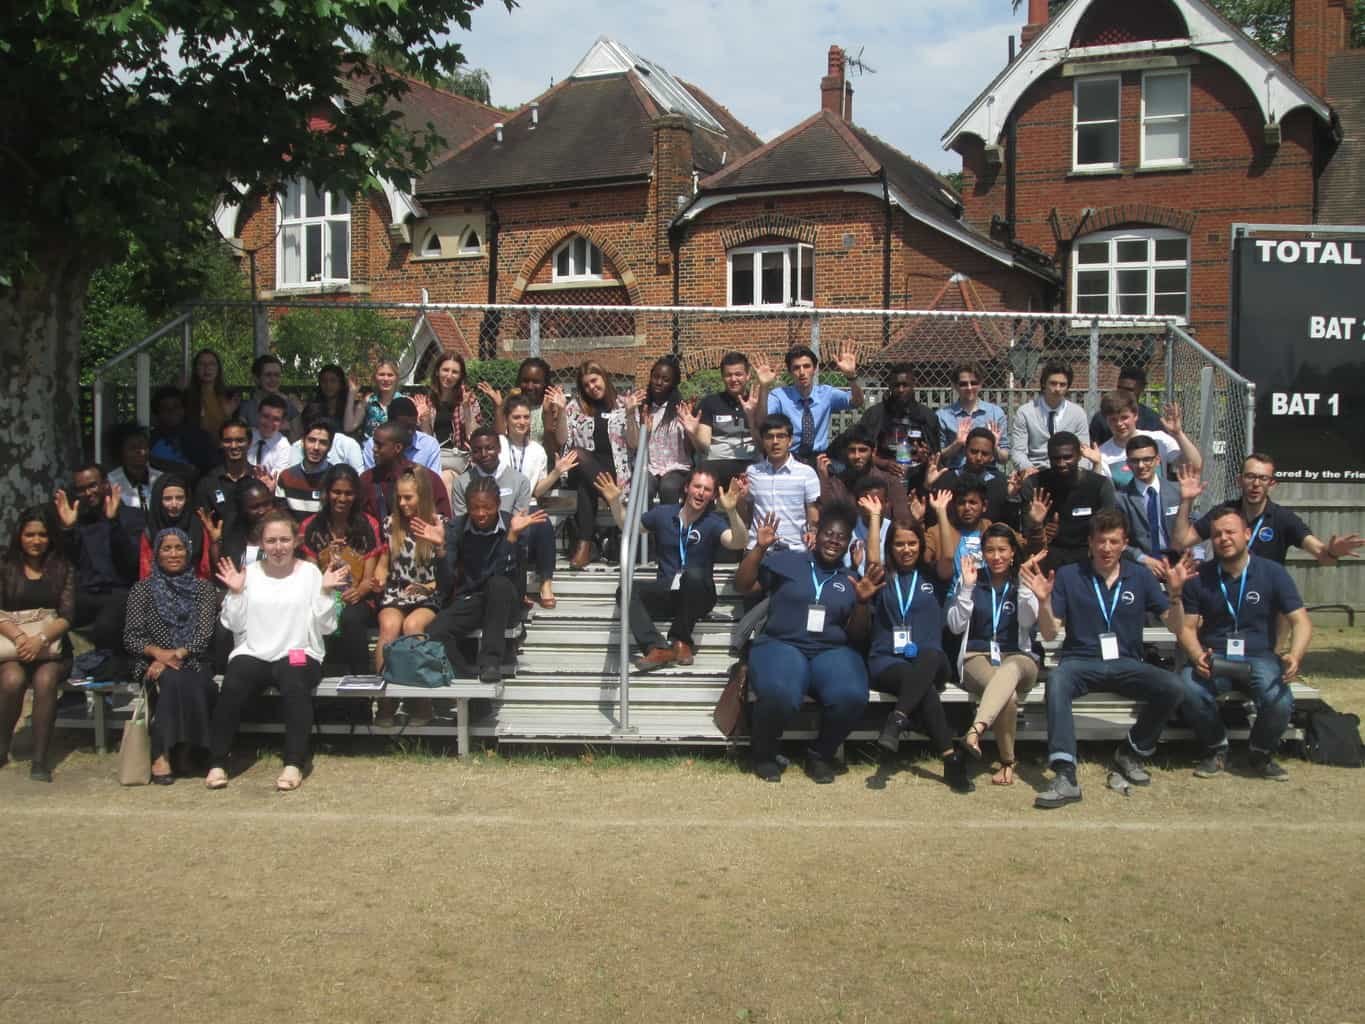 Aspirations are hotting up at Kings College School, Wimbledon